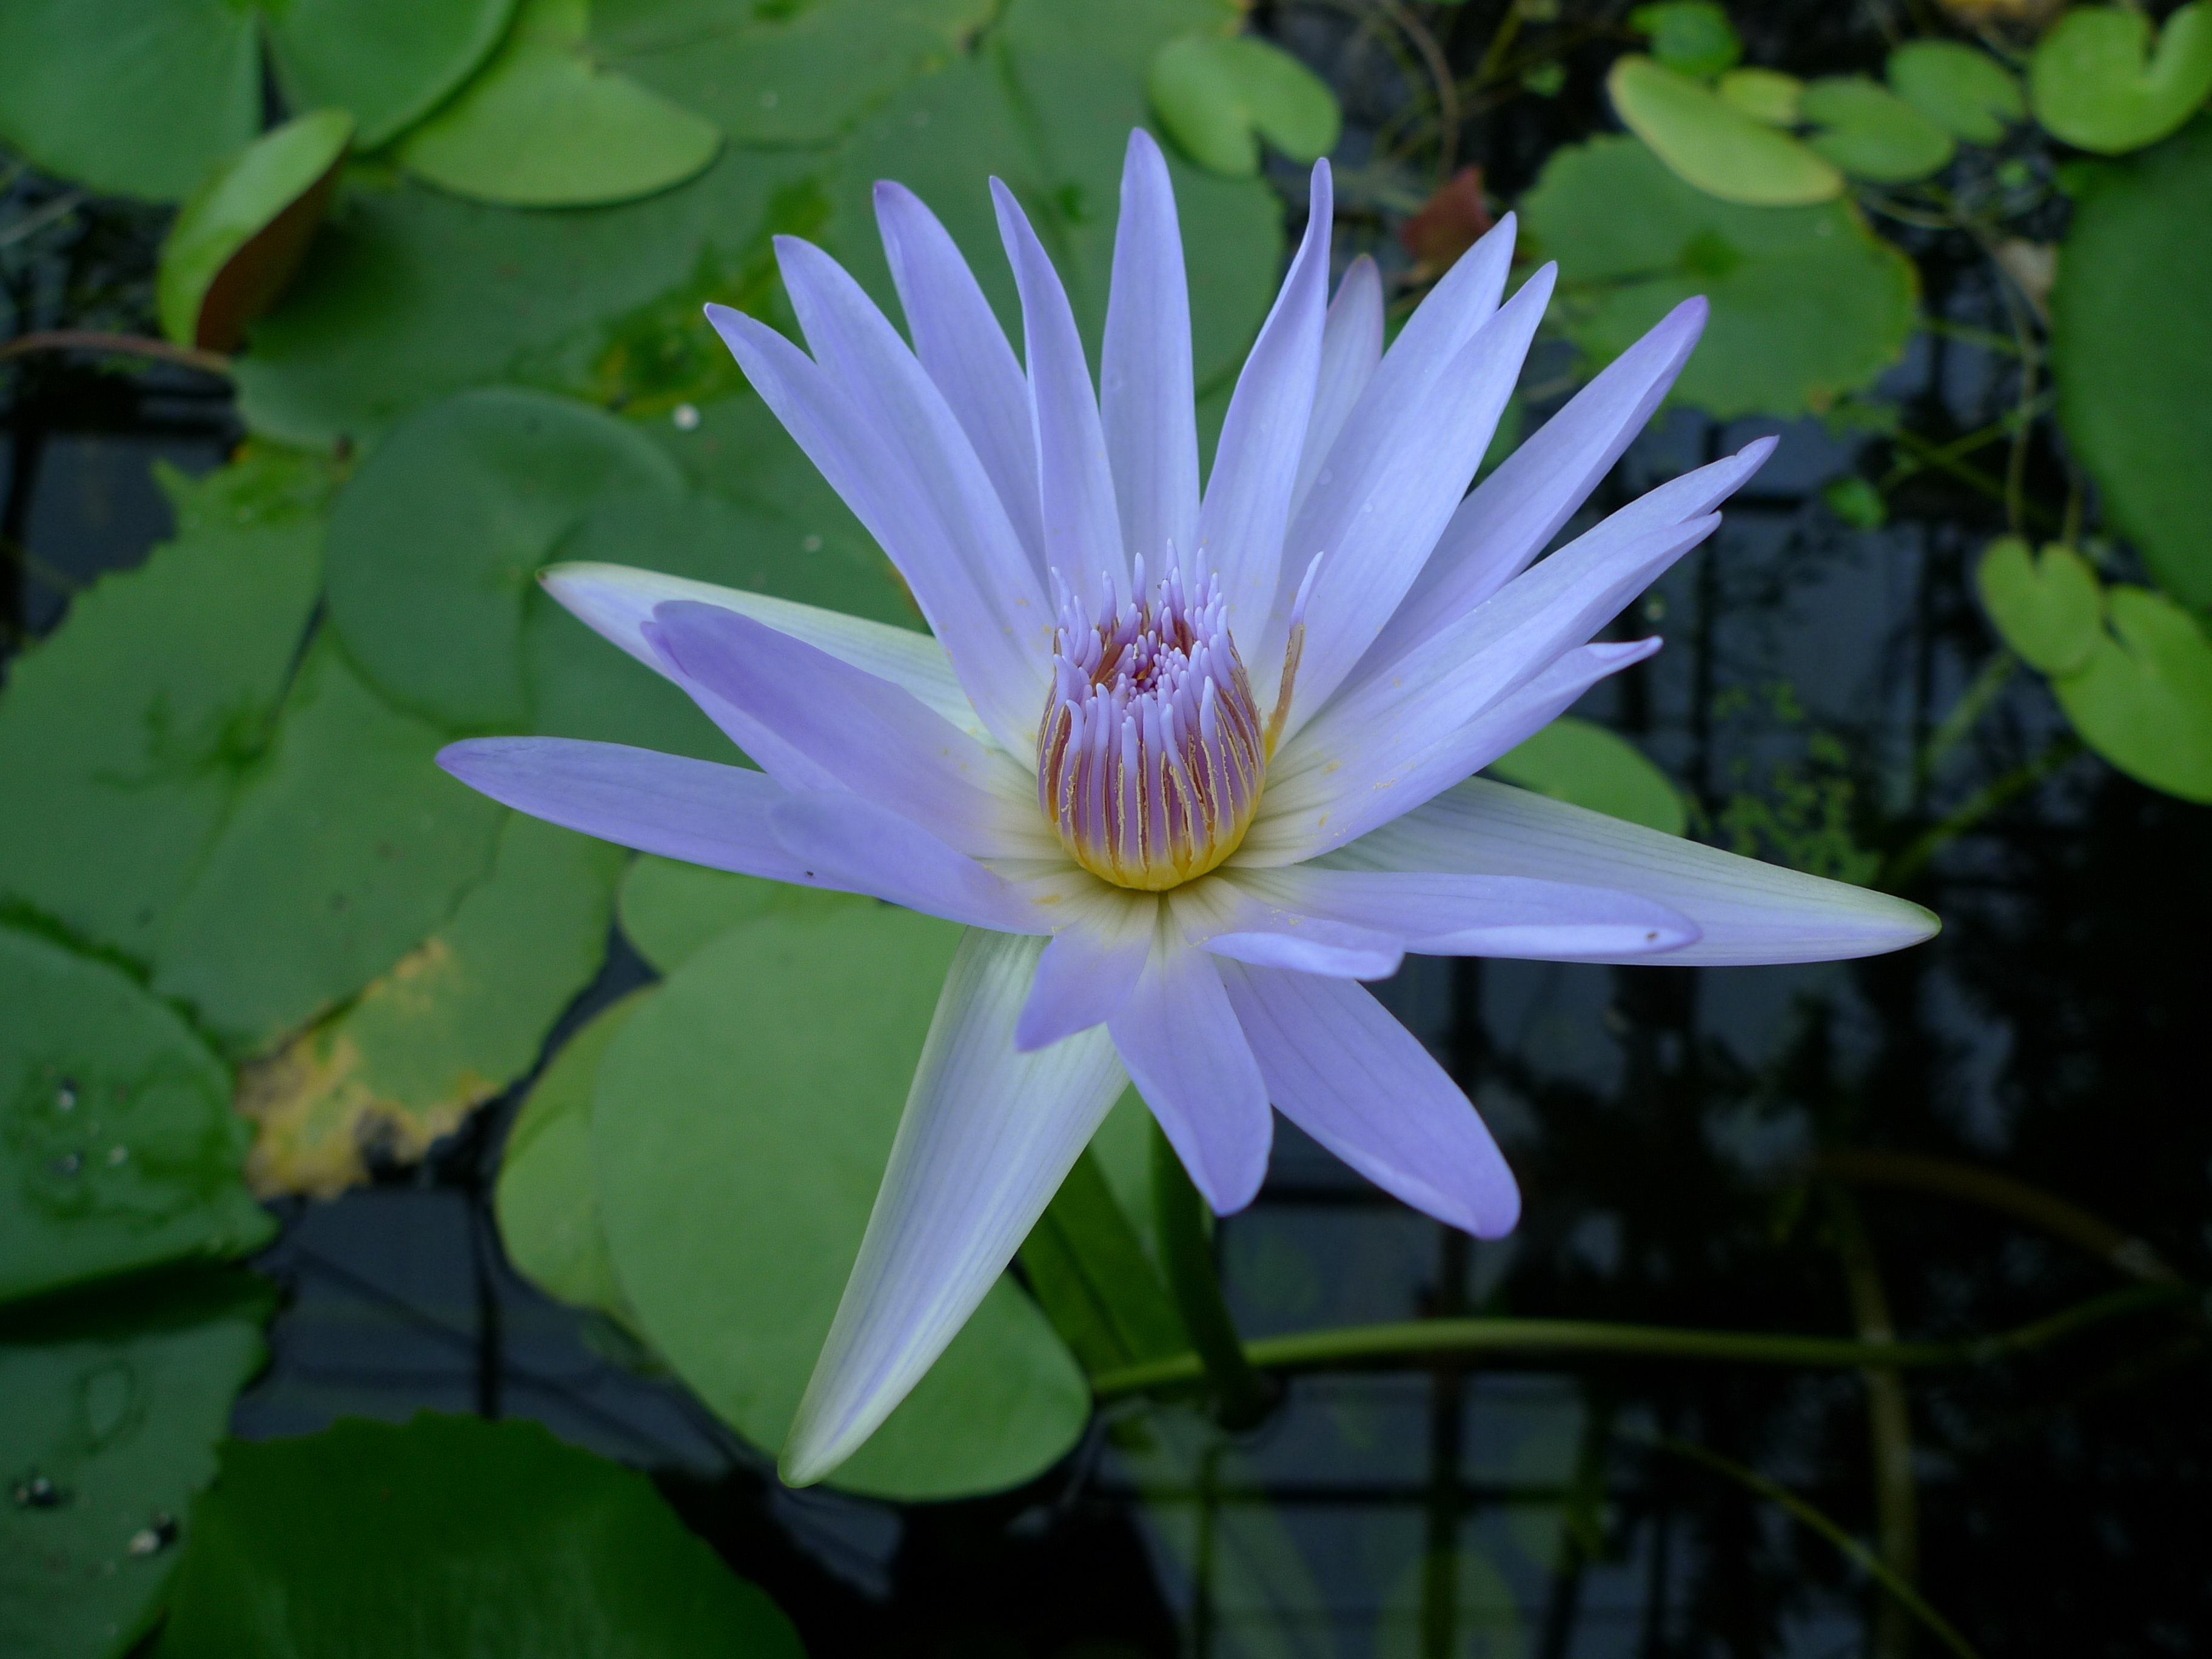 Nymphaea nouchali var caerulea nymphaeaceae blue water lily additional images for this accession izmirmasajfo